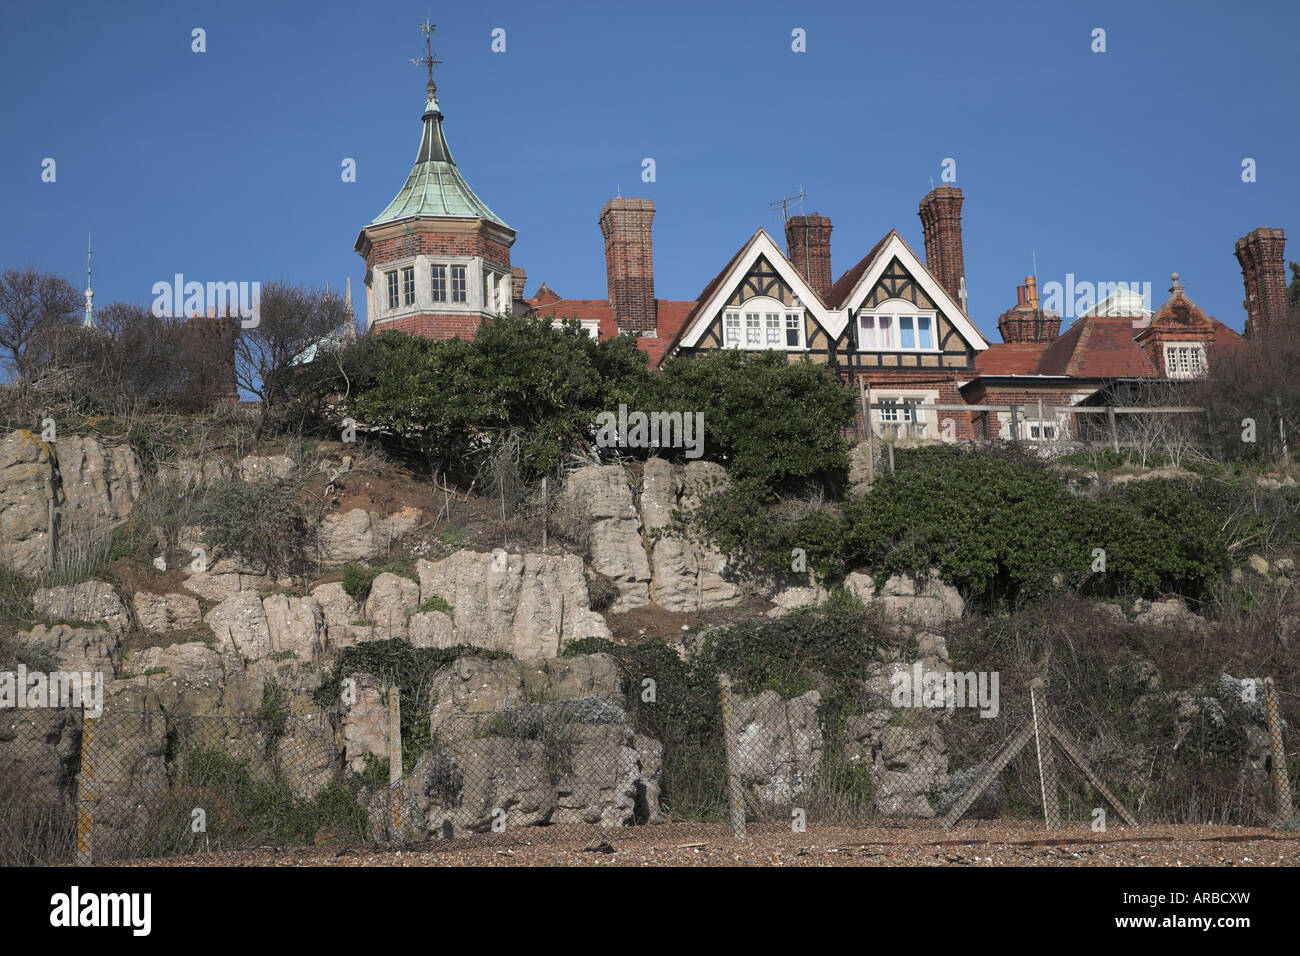 Pulhamite gardens fronting Bawdsey Manor viewed from the beach, Suffolk, England - Stock Image